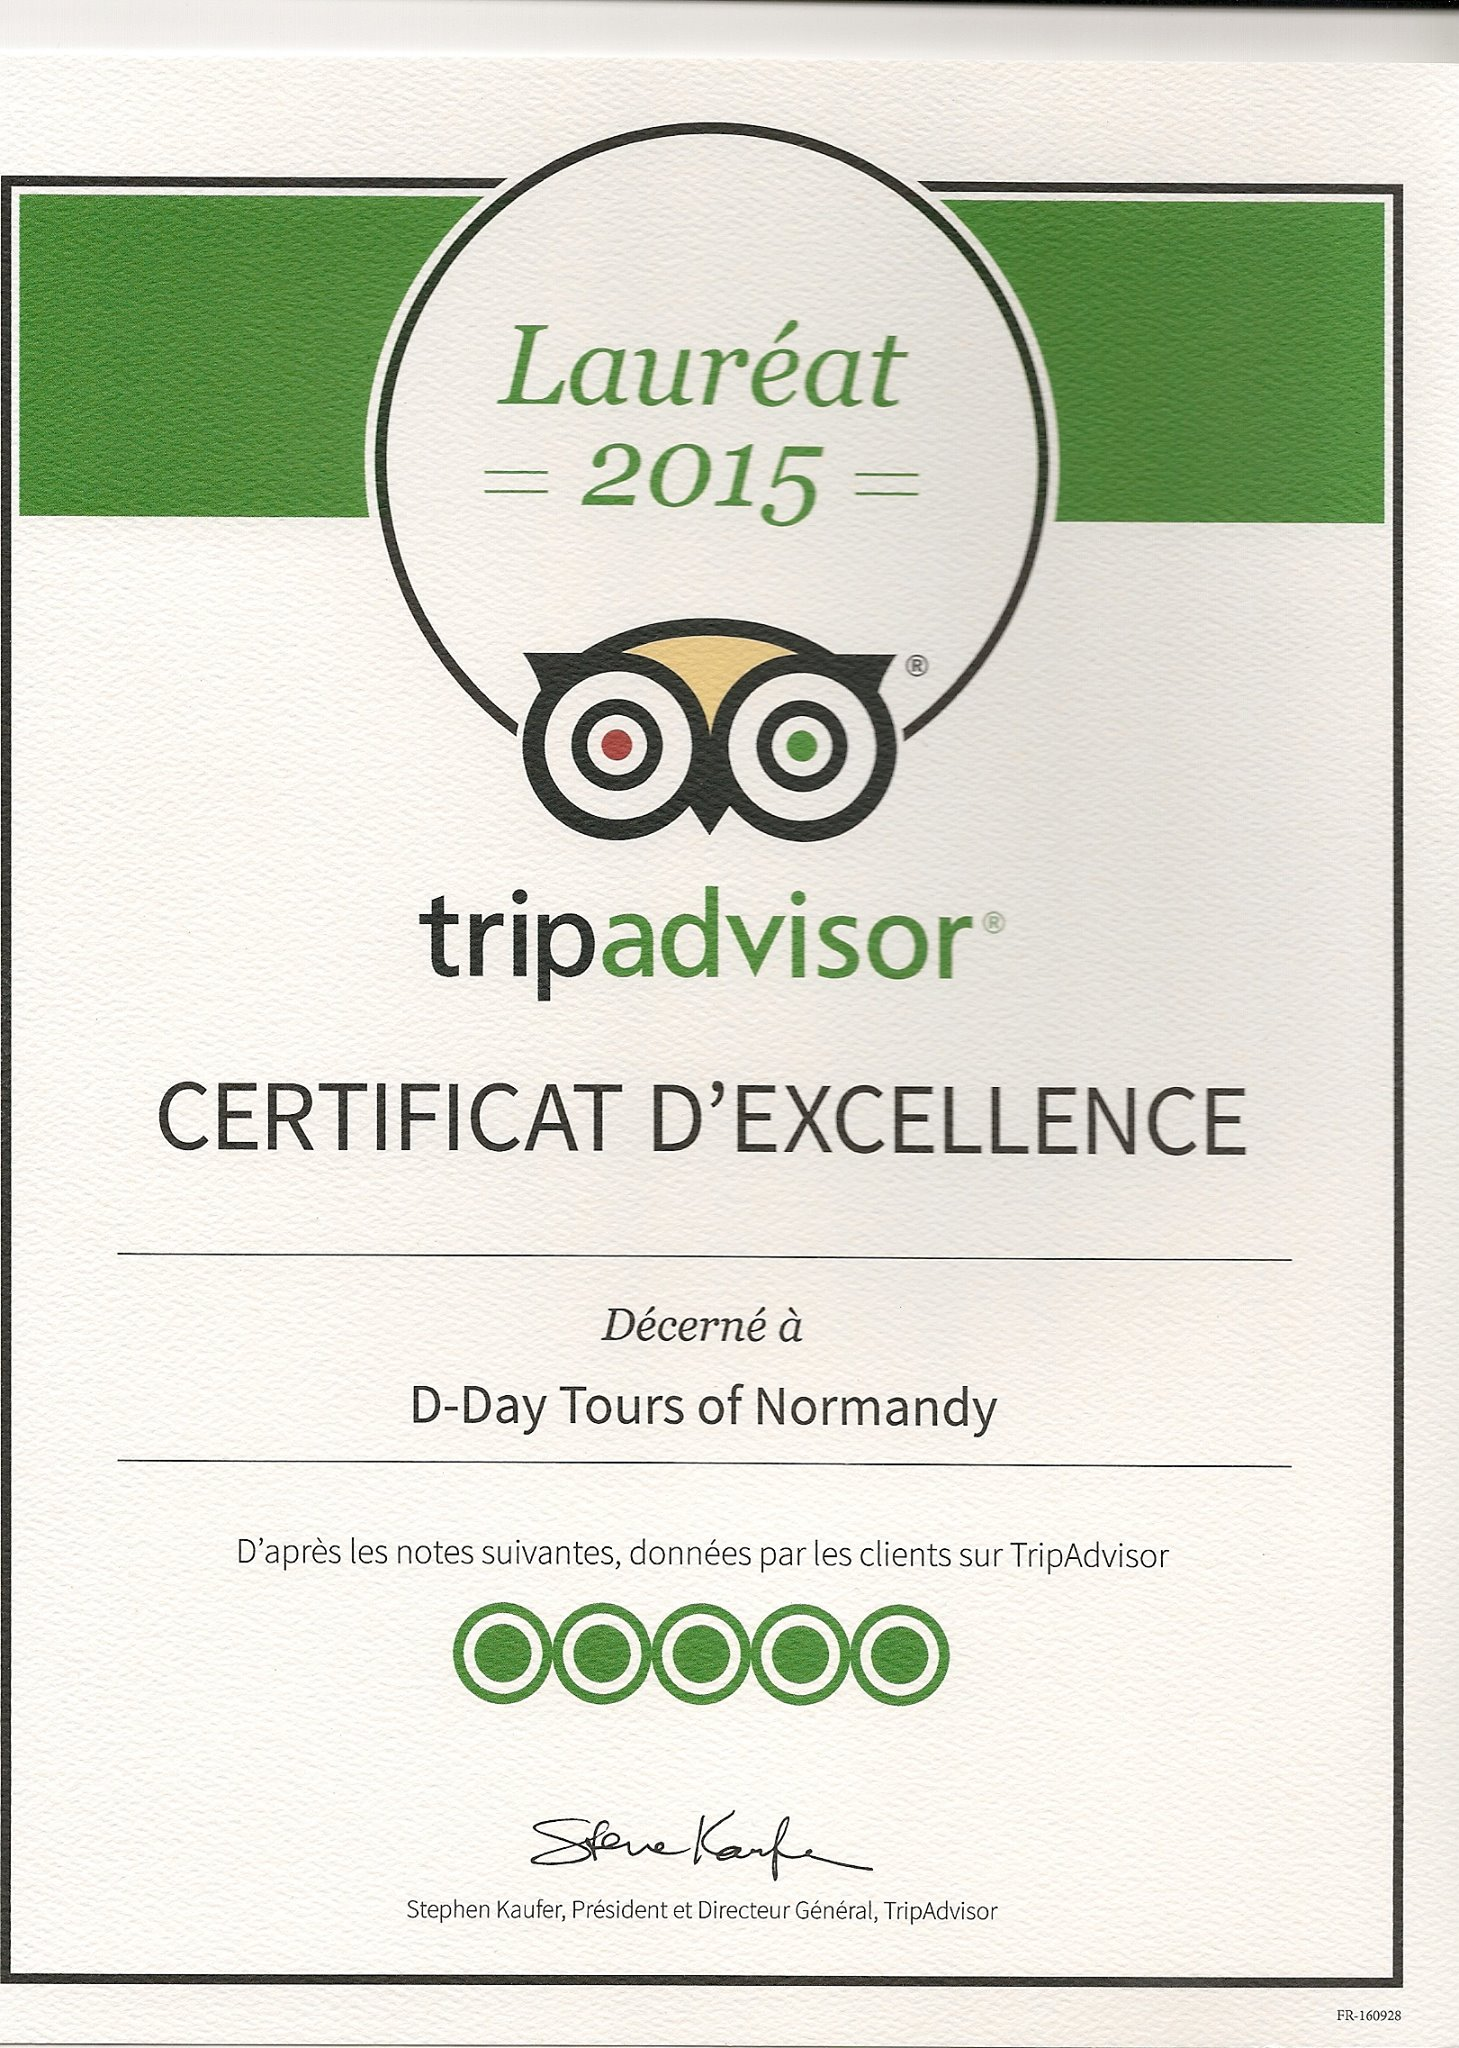 D Day Tours of Normandy TripAdvisor Certificate of Excellence